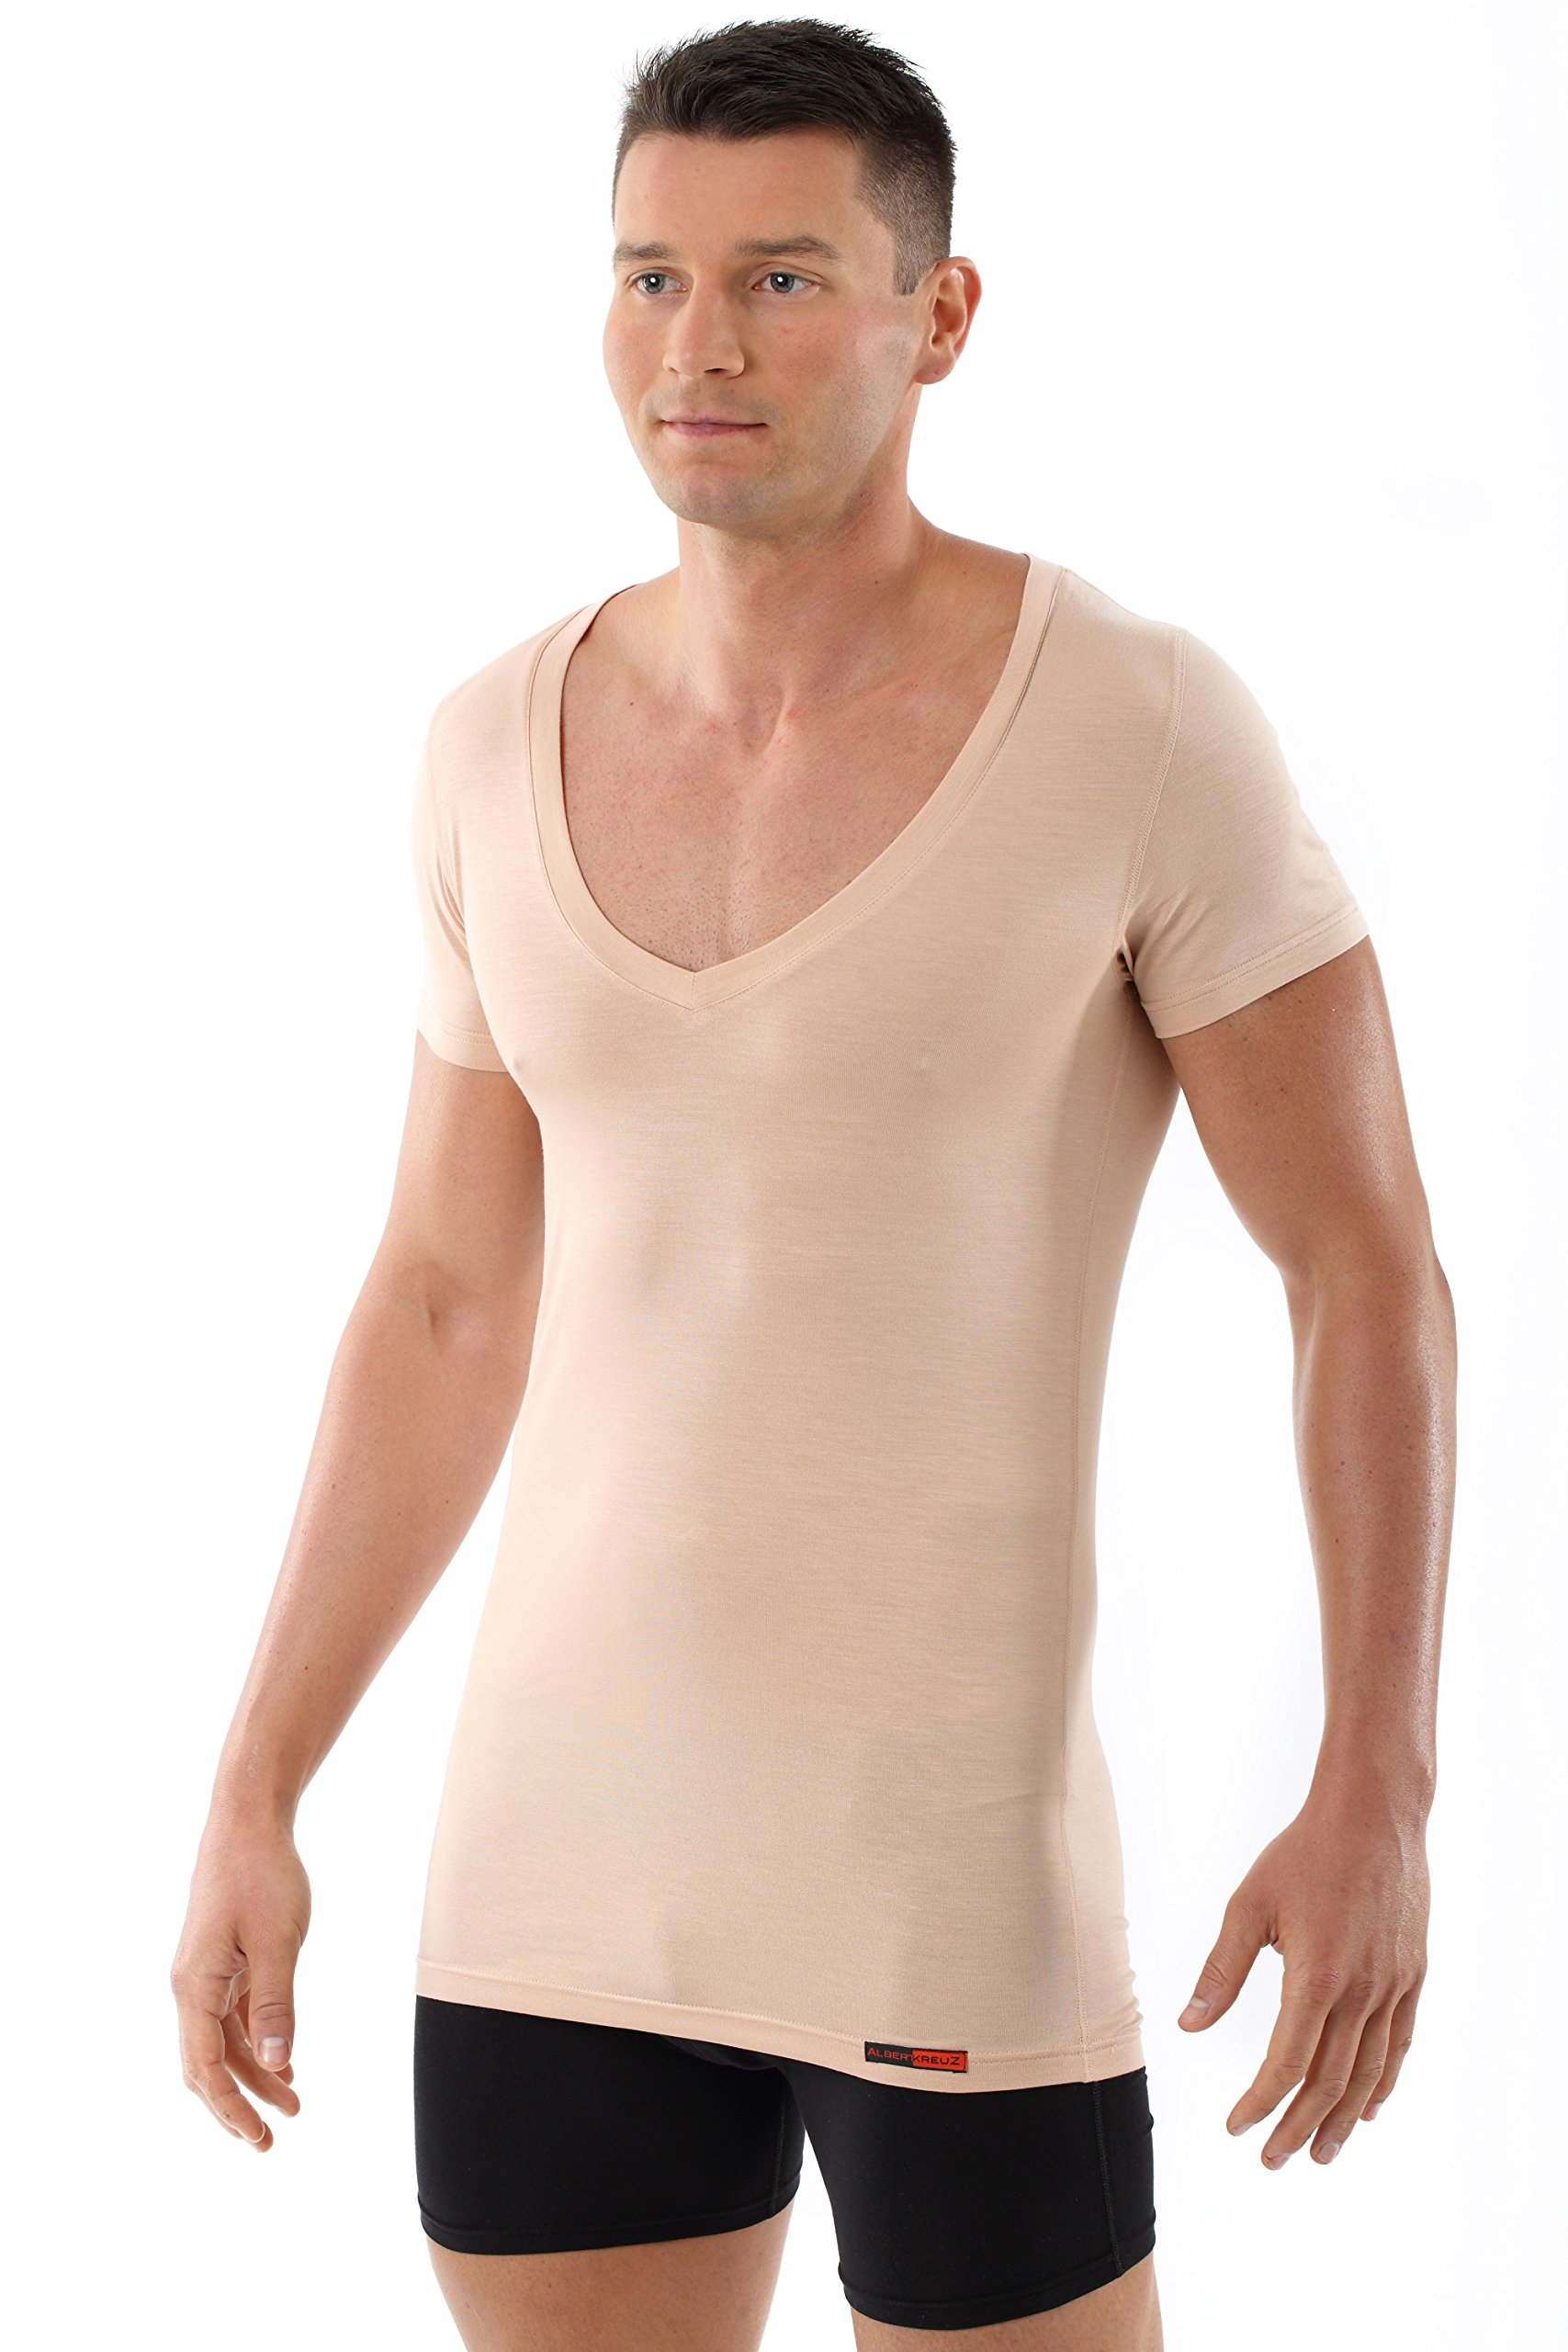 ALBERT KREUZ men's invisible deep V-neck business undershirt with short sleeves of breathable Micromodal Light nude beige XXL